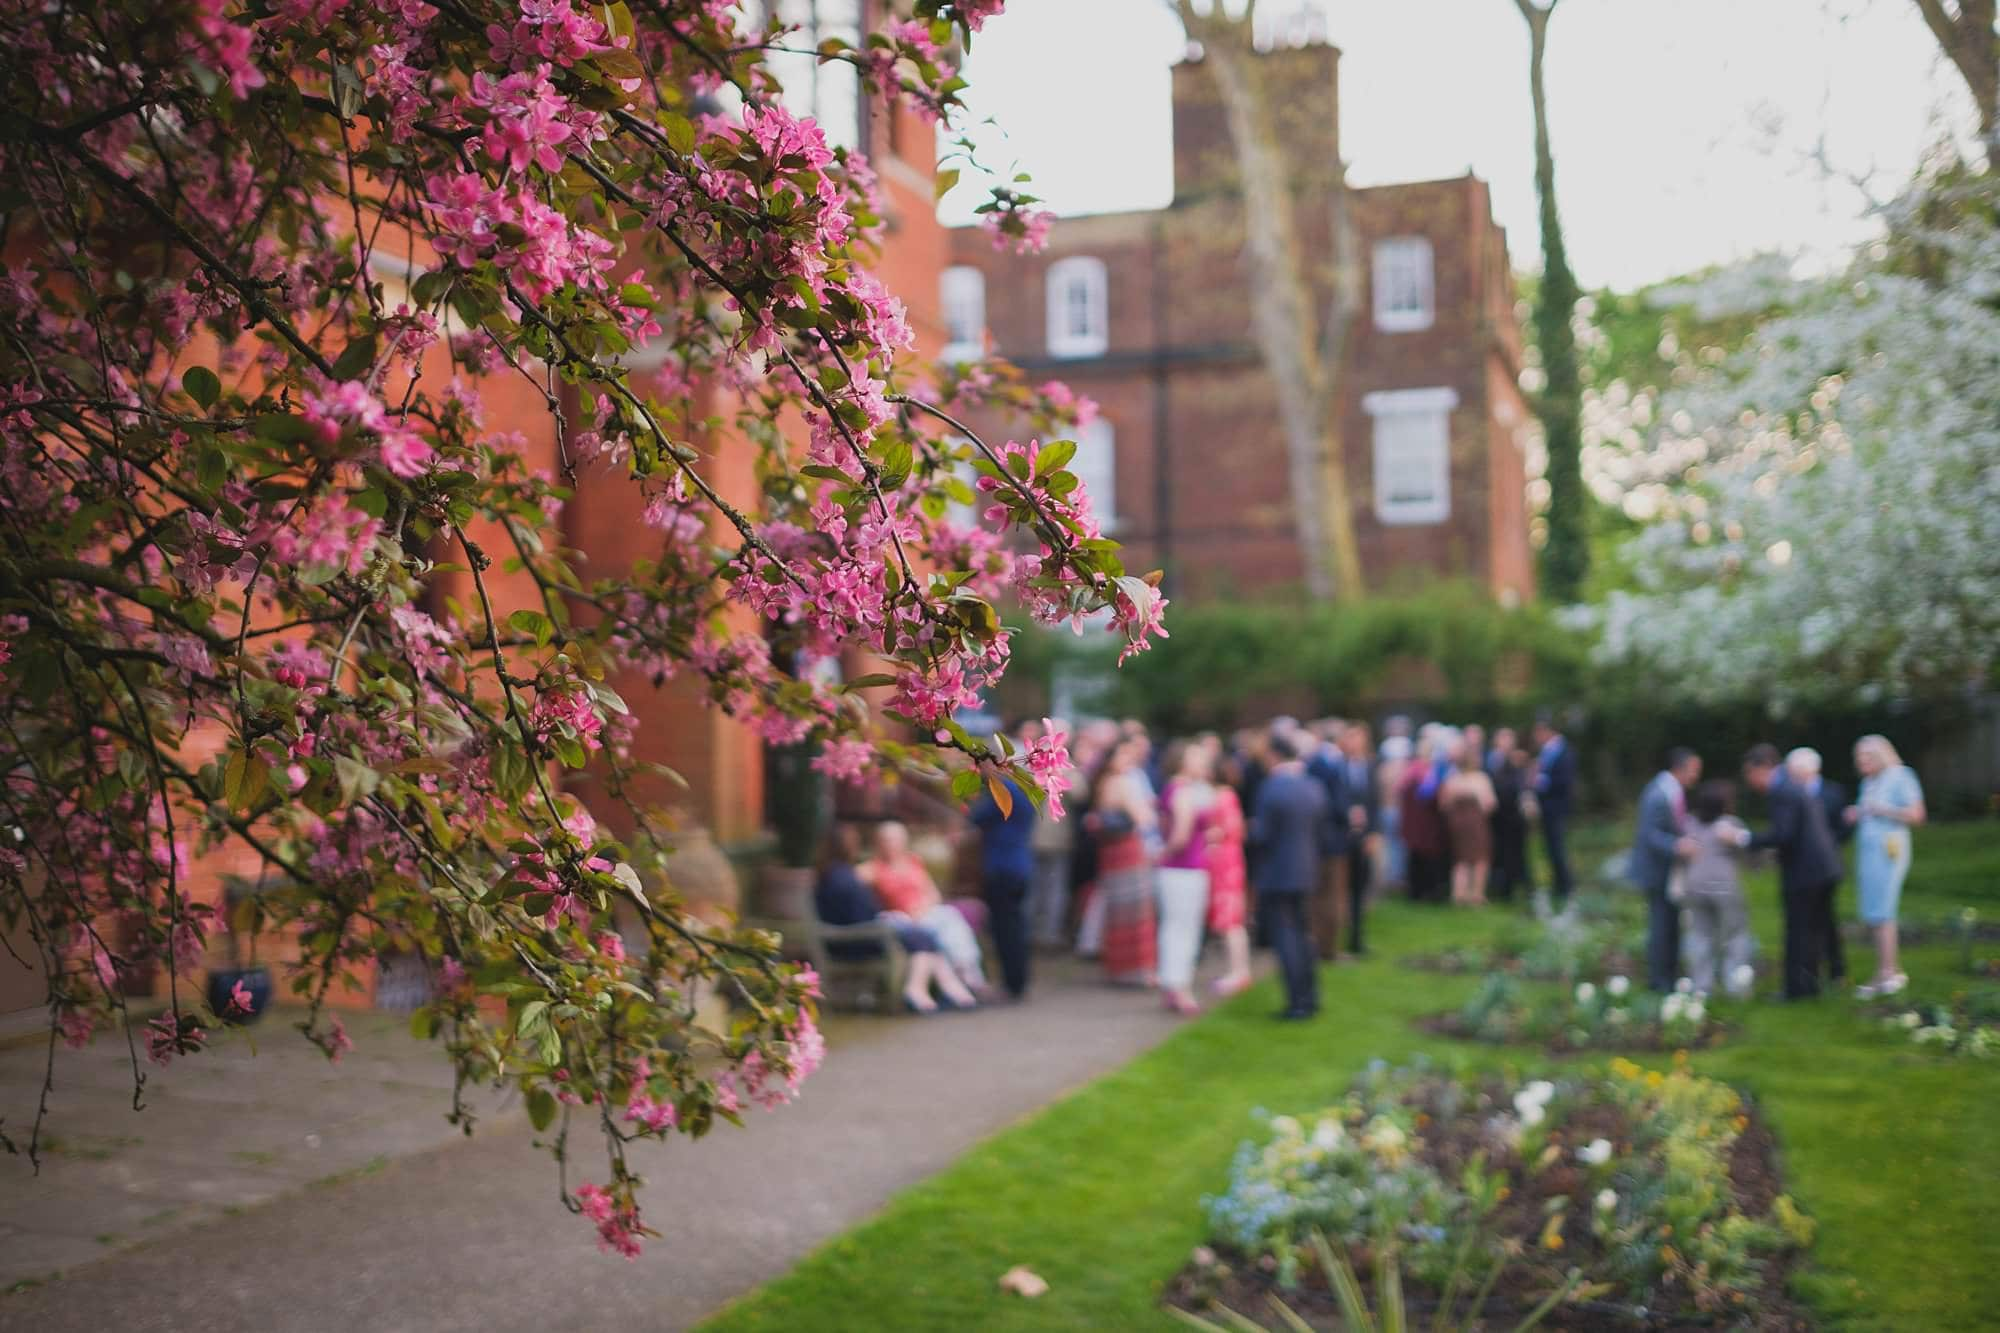 guests in the garden at a leighton house museum event